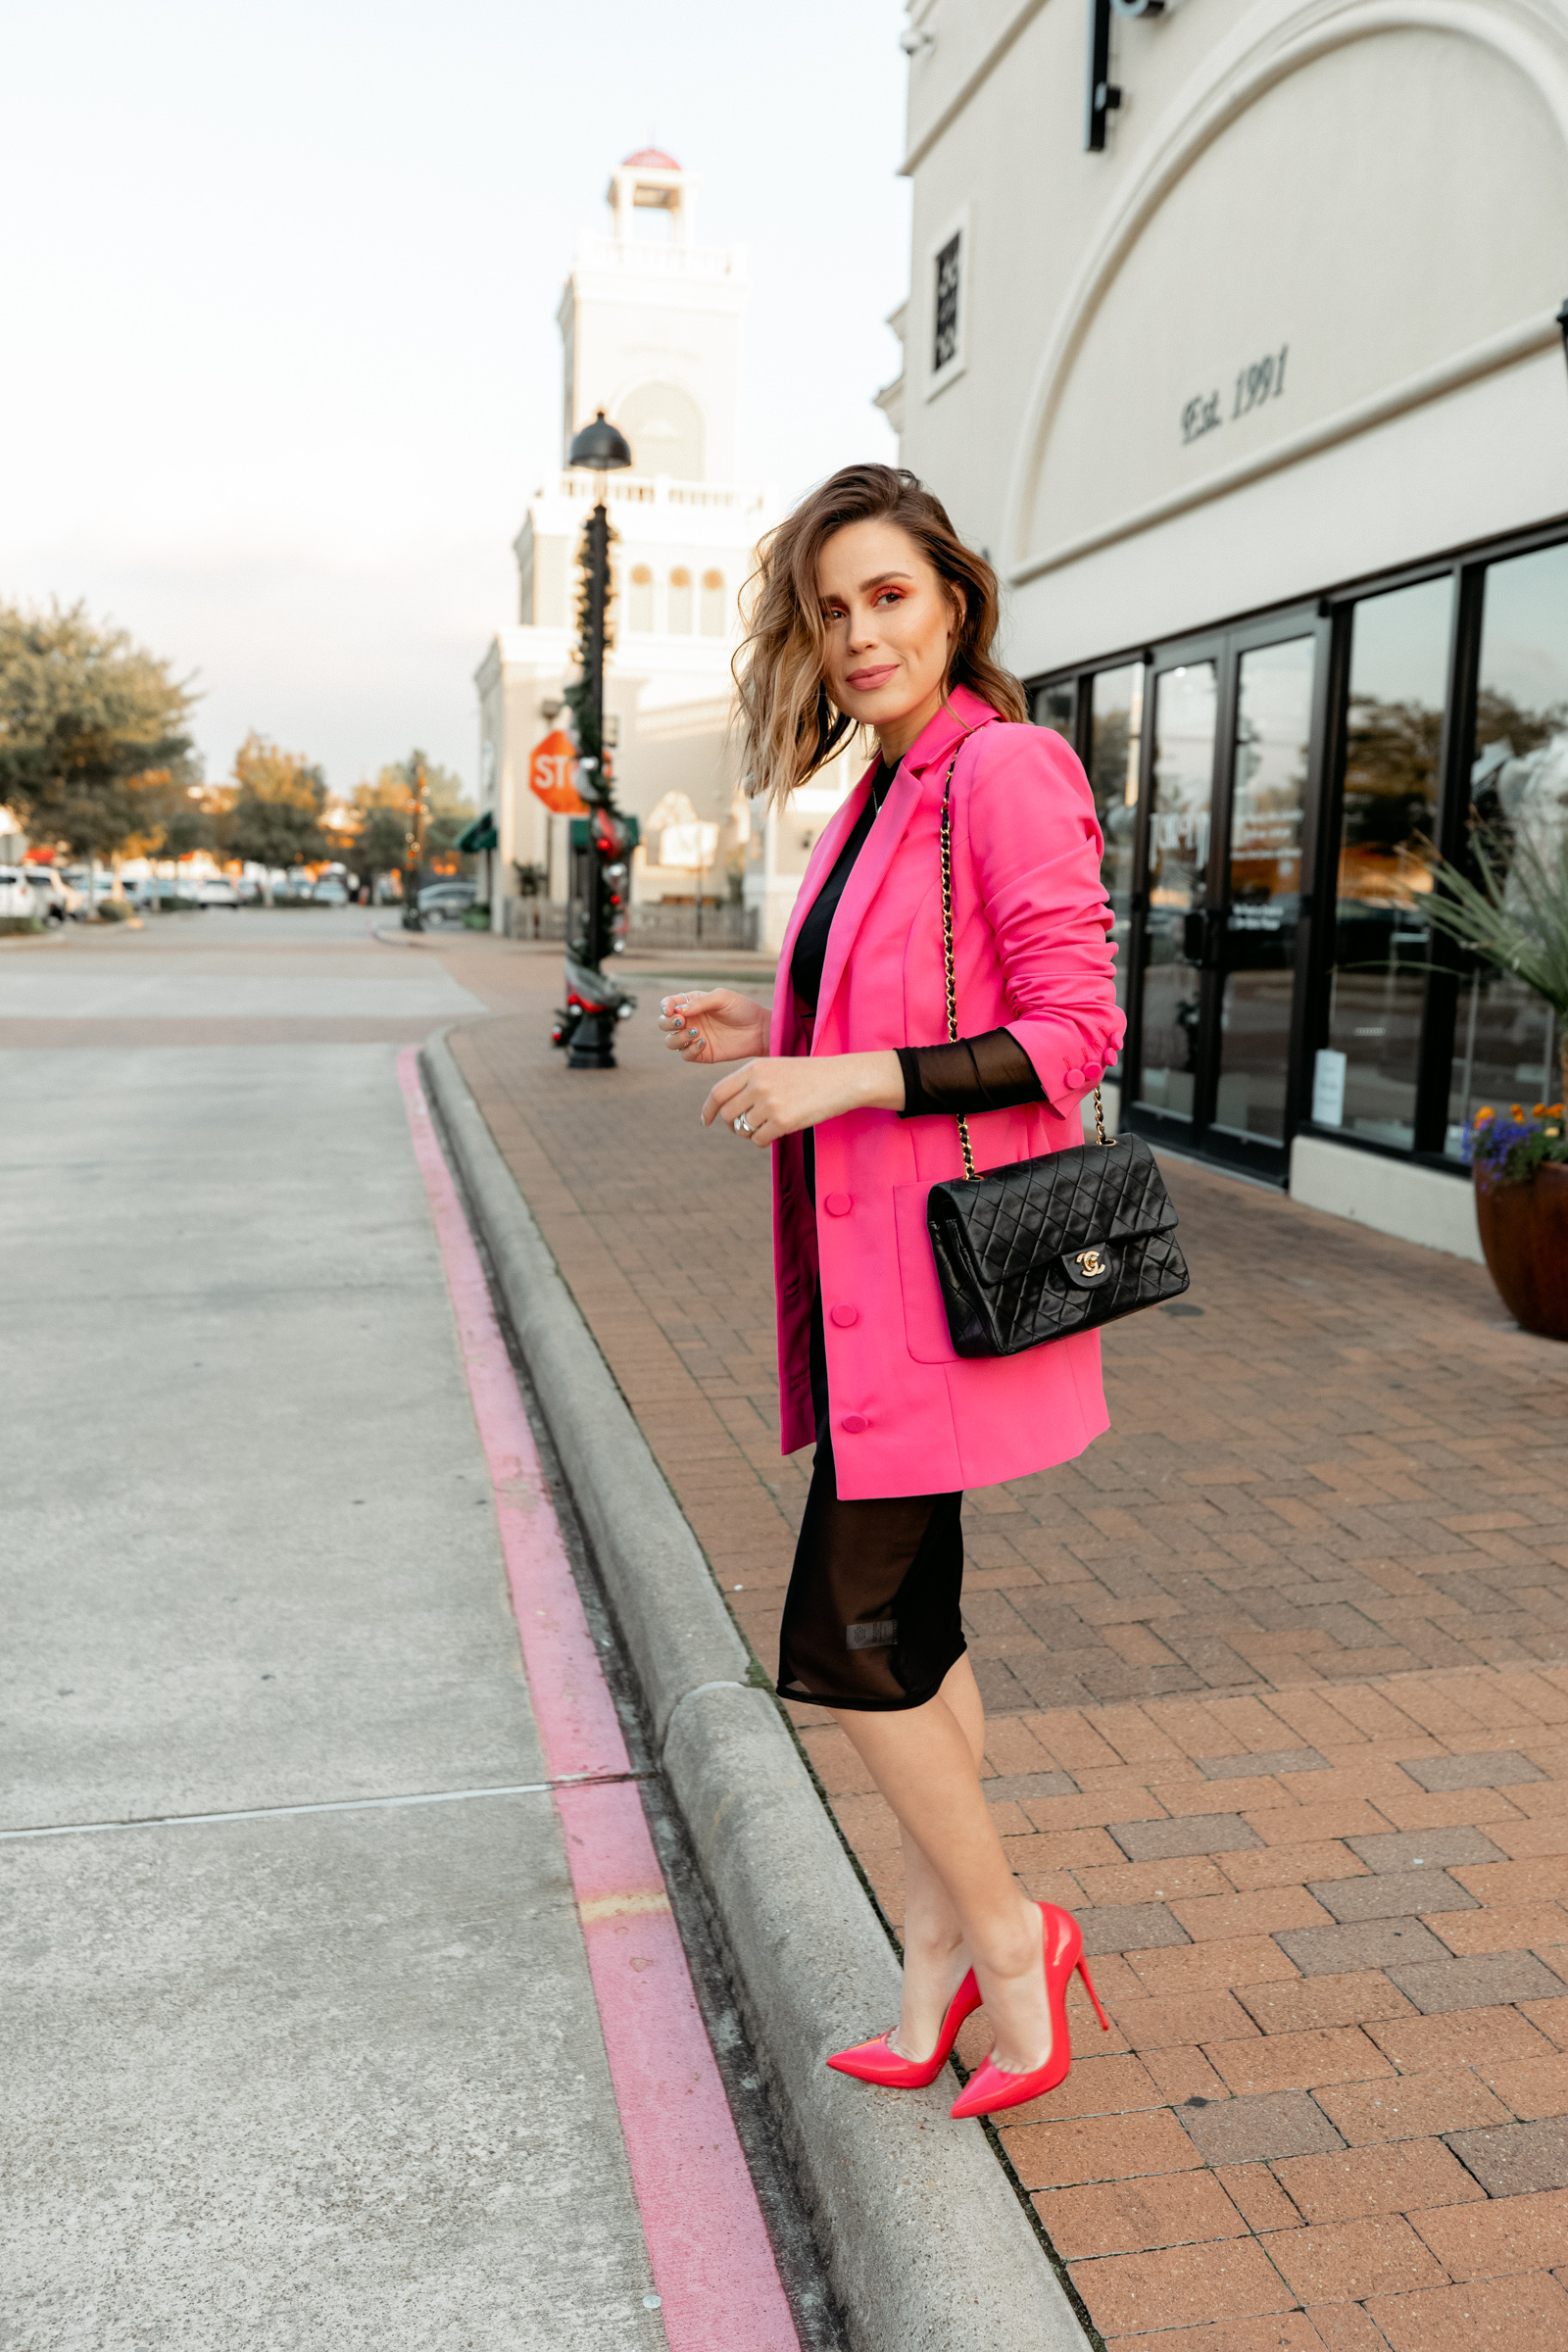 Houston fashion blogger Elly Brown wears a pink blazer with a little black dress and a vintage Chanel